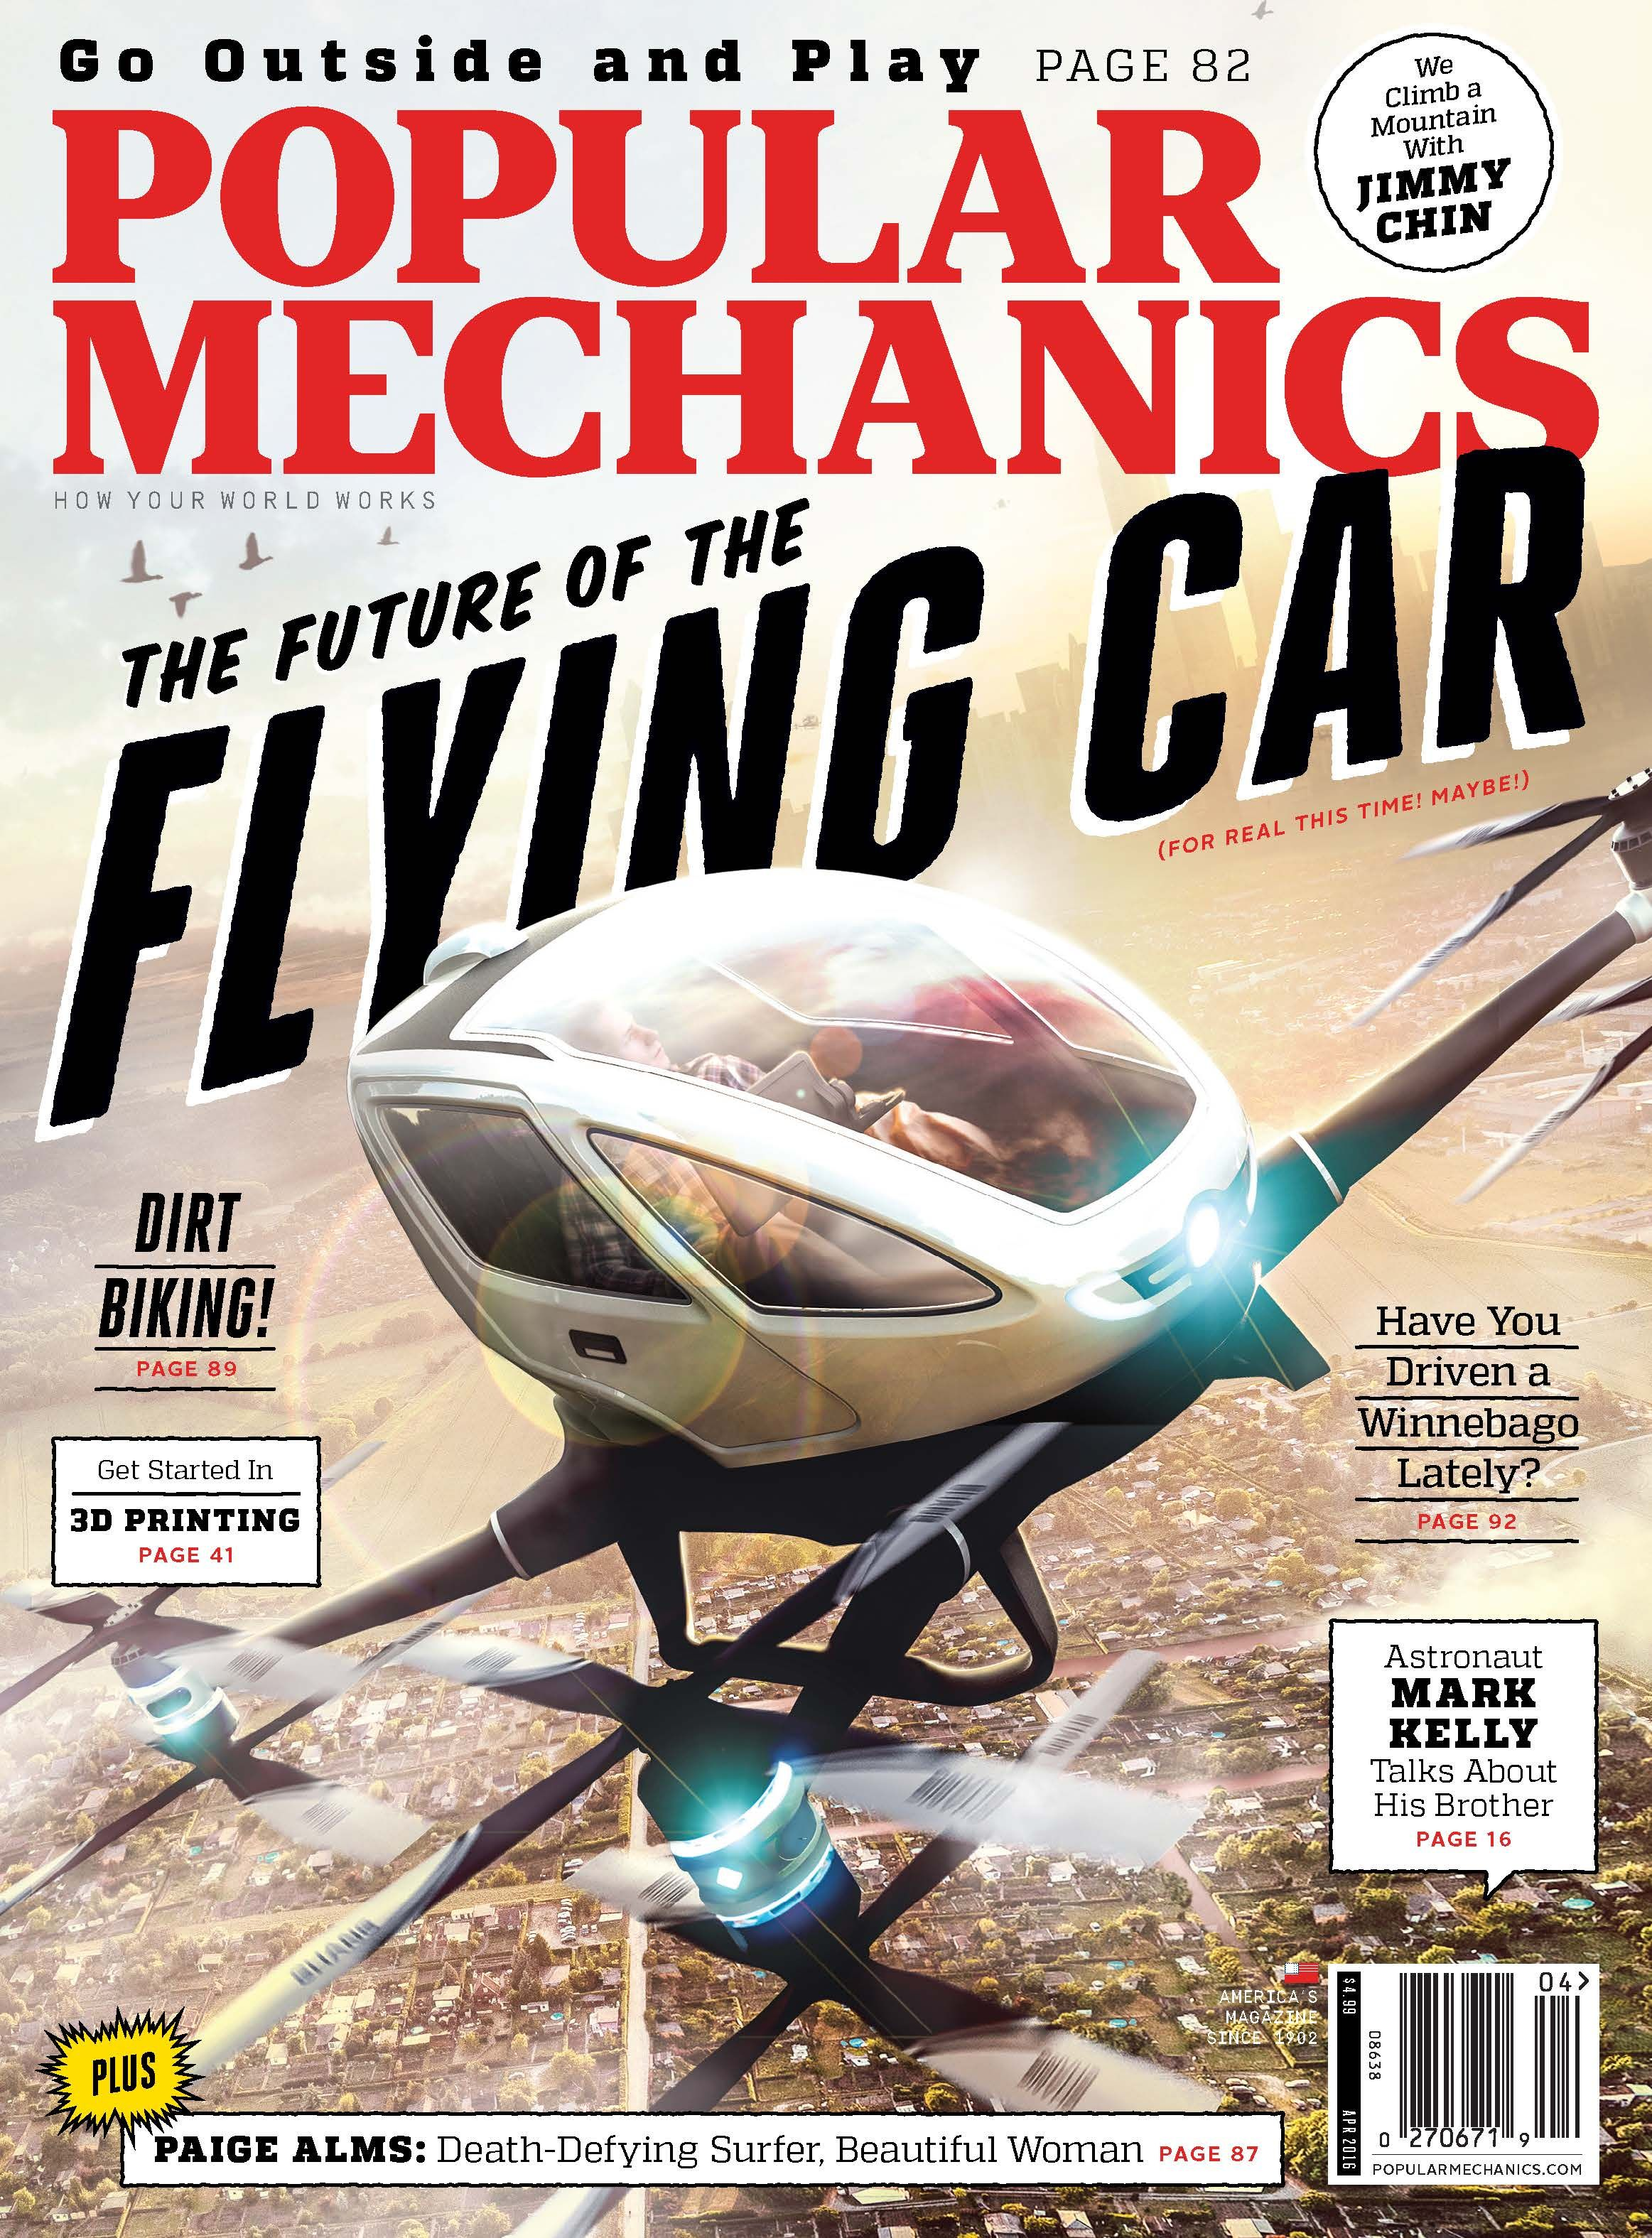 Popular Mechanics Sweepstakes >> Popular Mechanics Popular Science And Mechaincs Popular